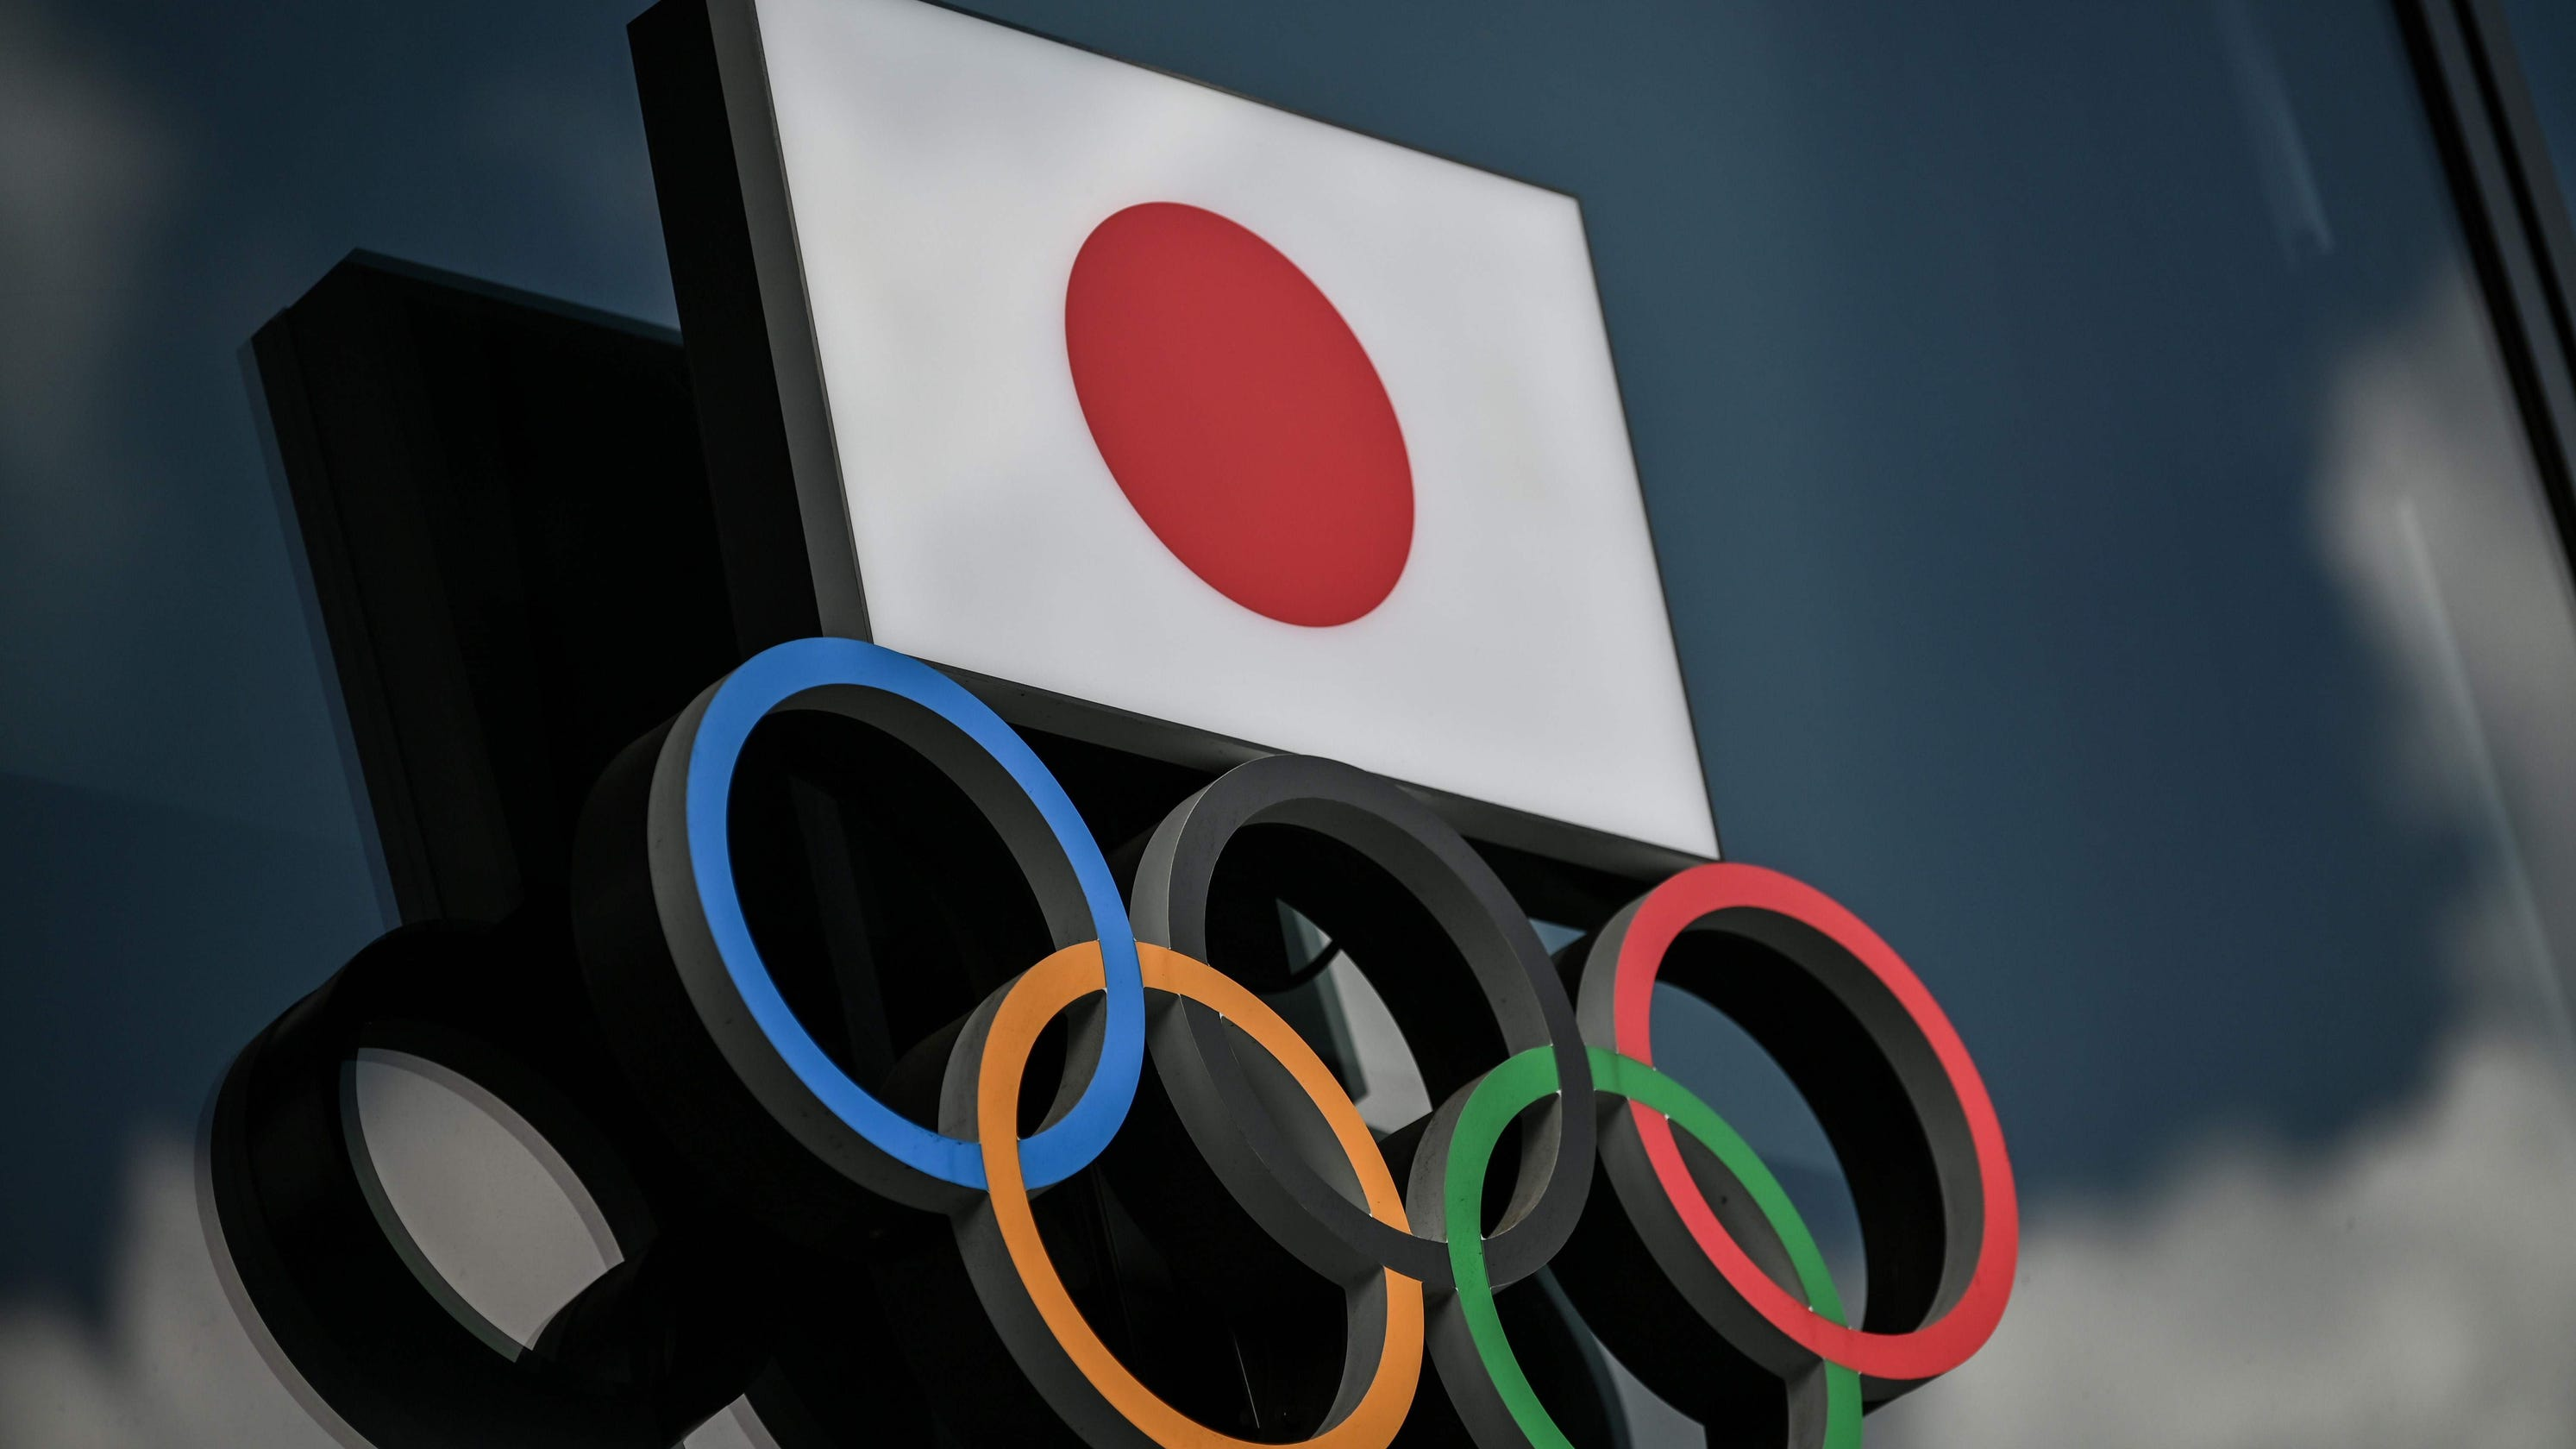 Tokyo Games will happen in 2021, even if they look different than usual